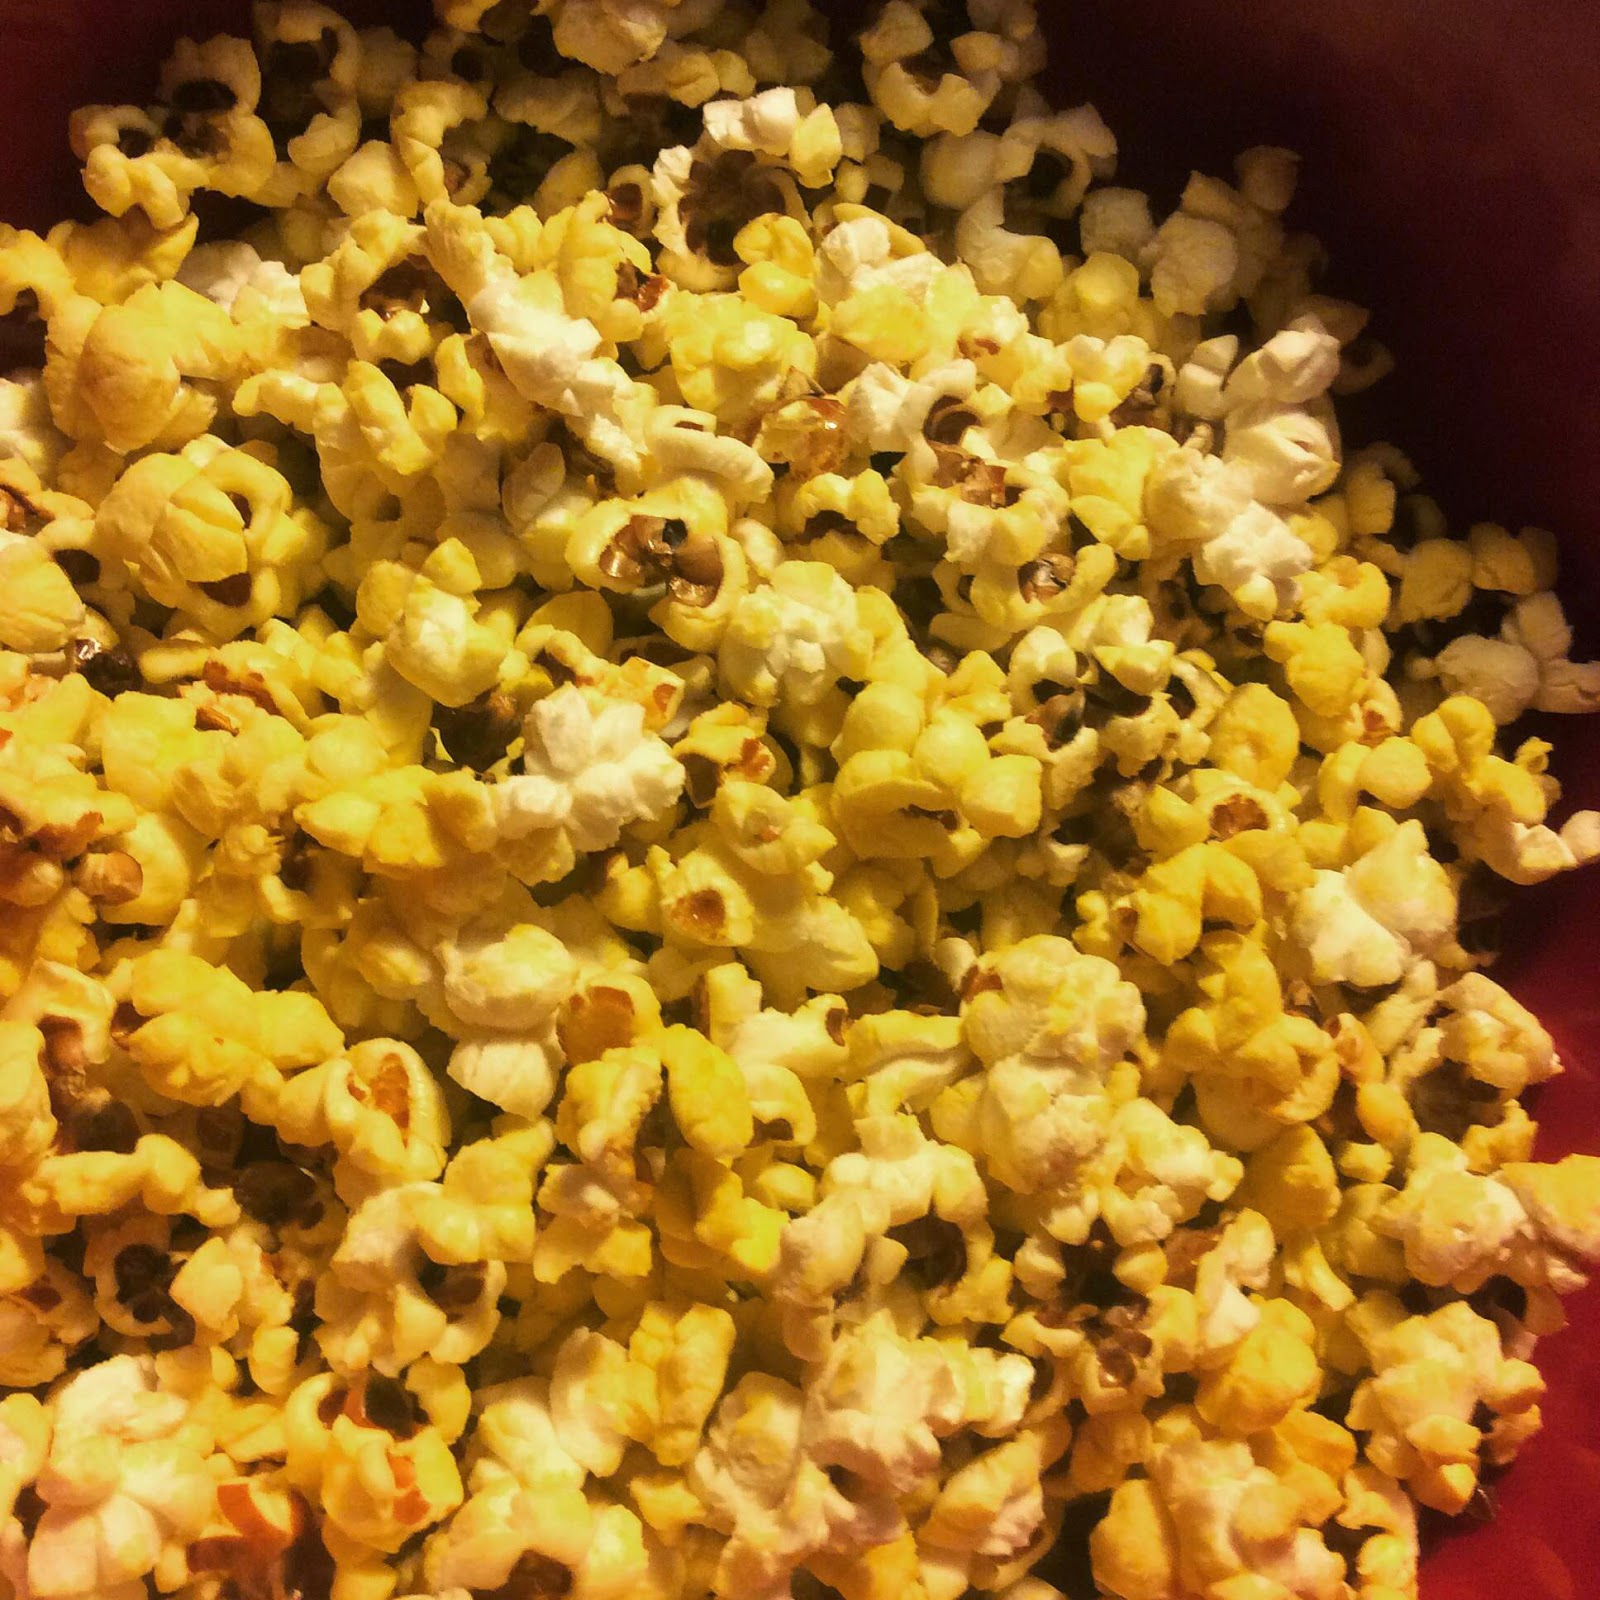 Franklin's Popcorn: Tasty Treat